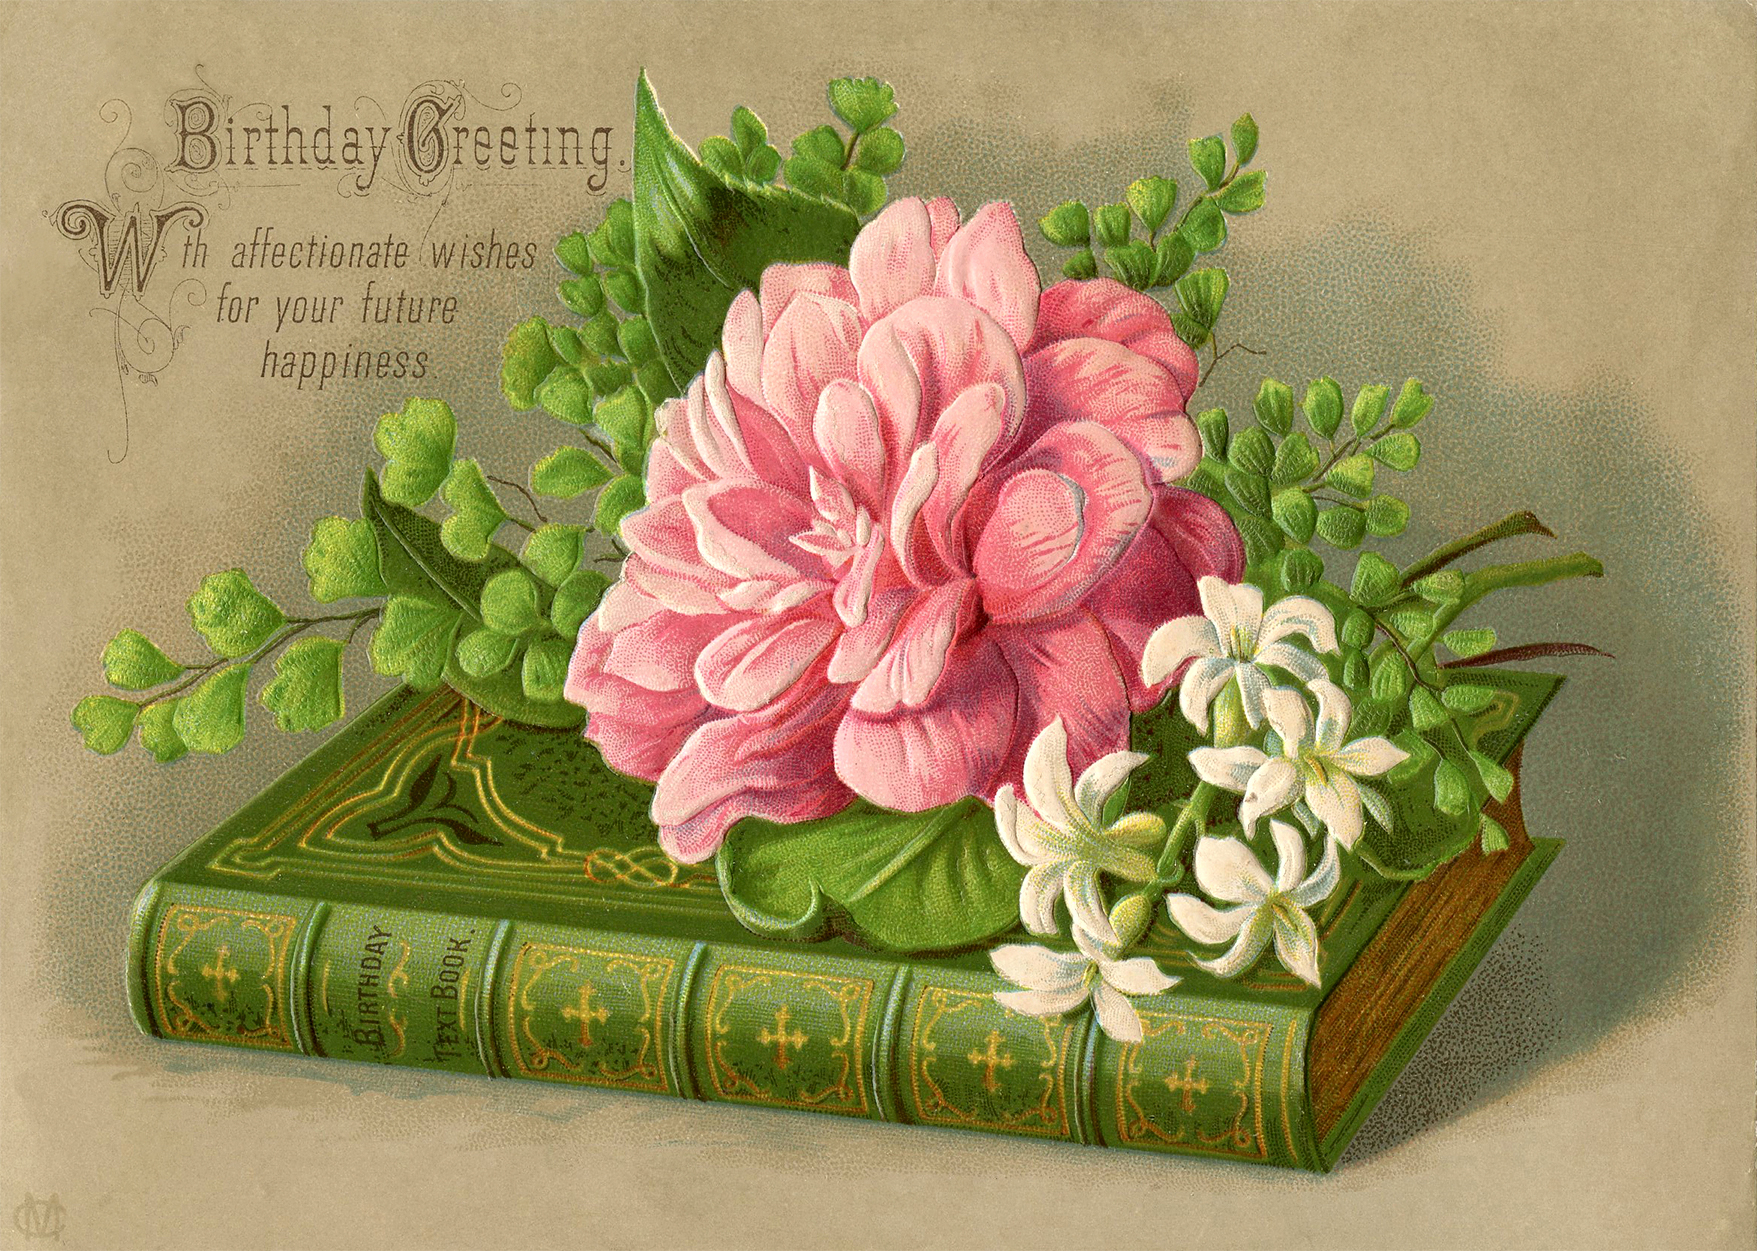 vintage birthday image - book - flowers